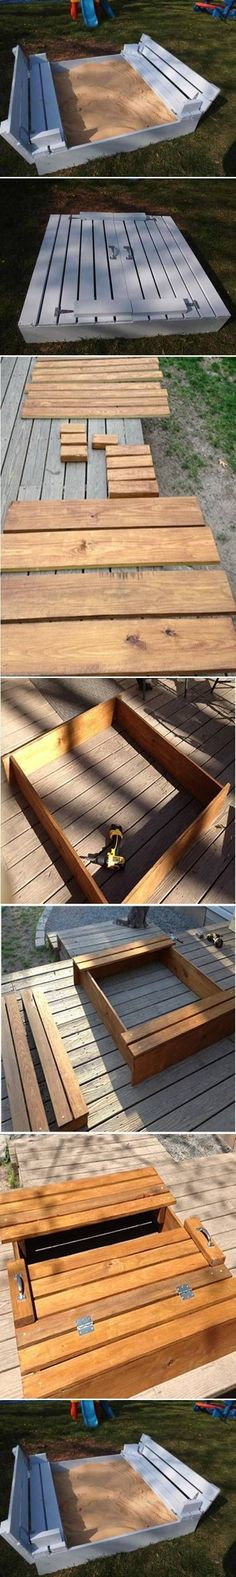 Sandkiste aus alten Paletten - DIY - 30 Amazing Uses For Old Pallets